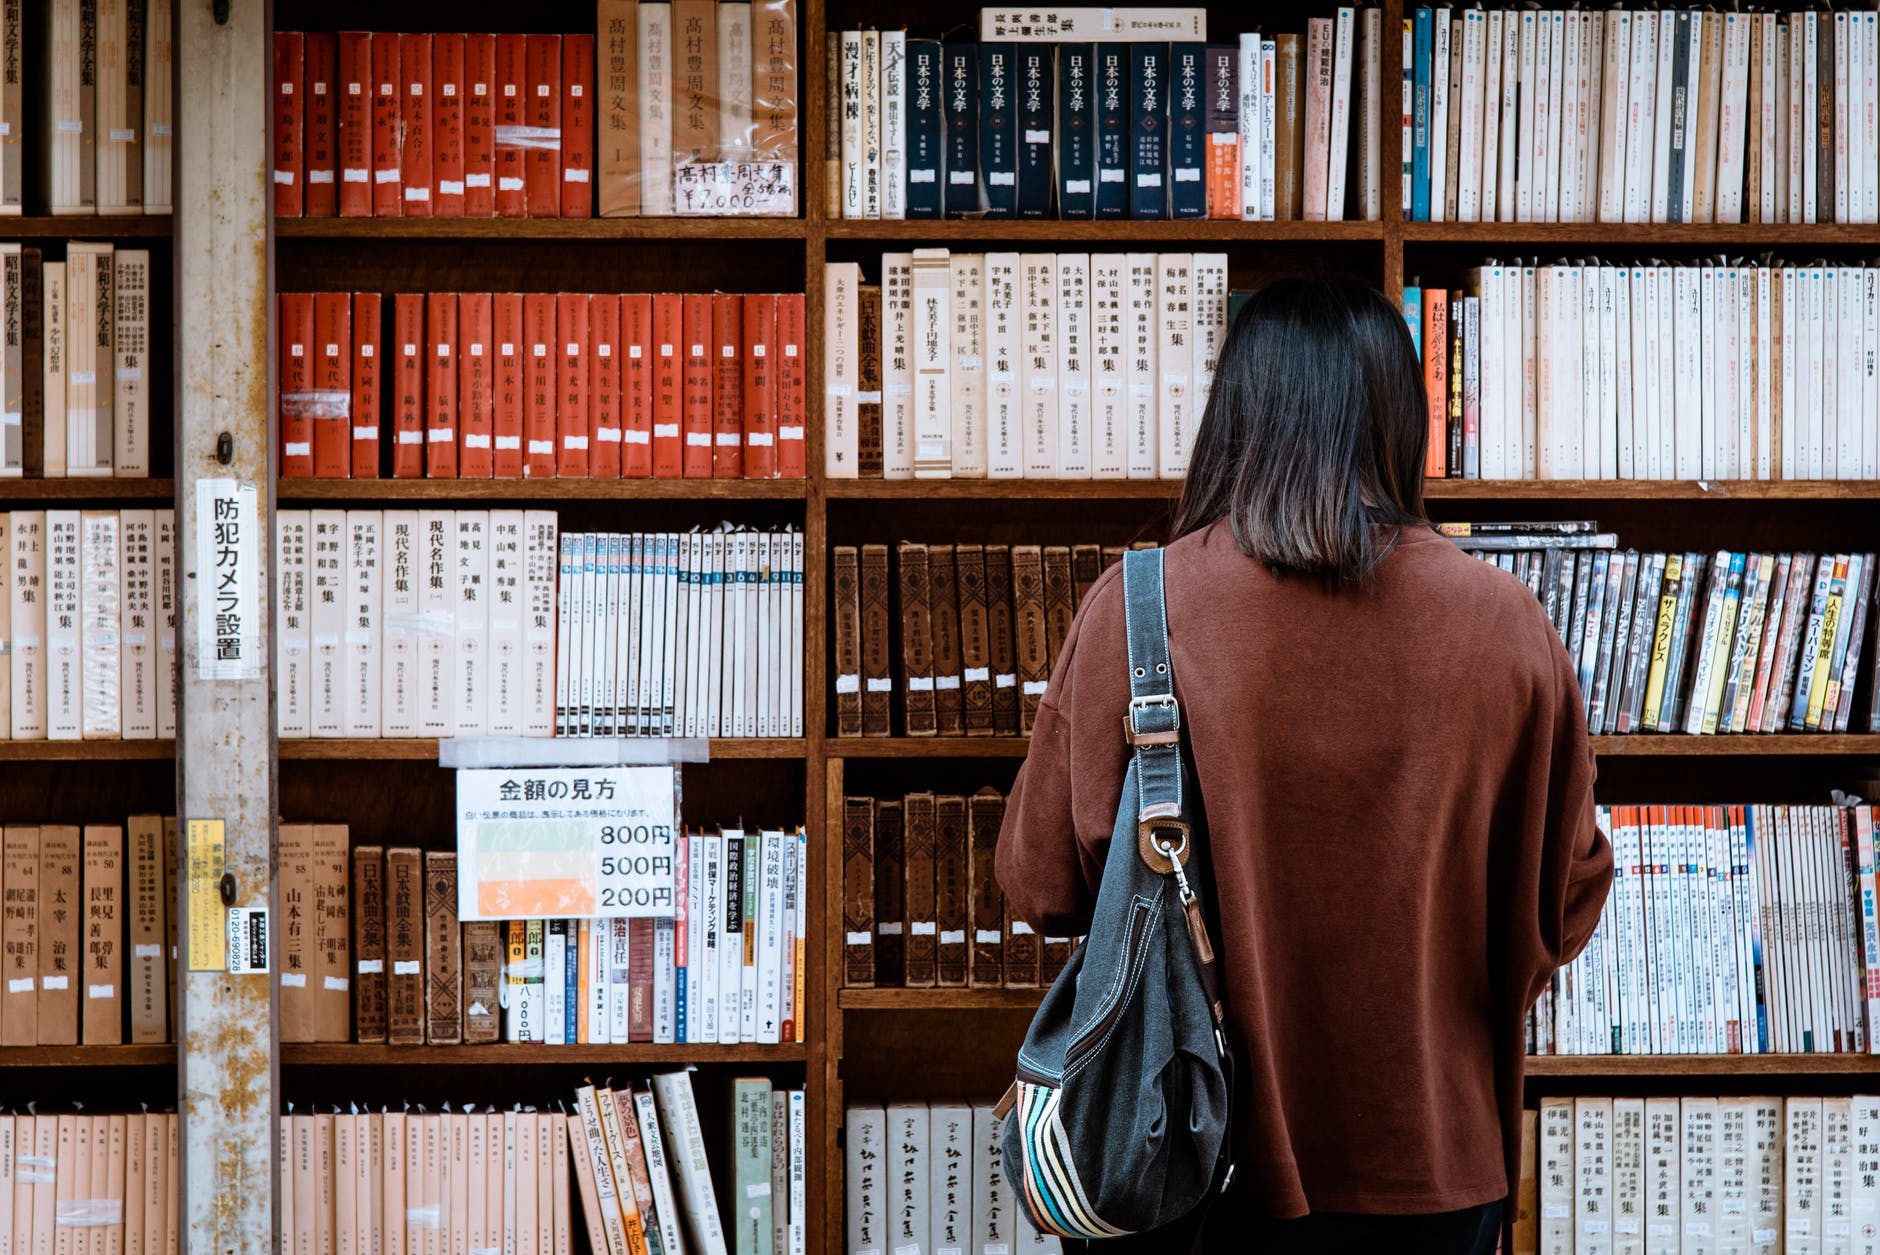 photo of a woman standing in front of a bookshelf